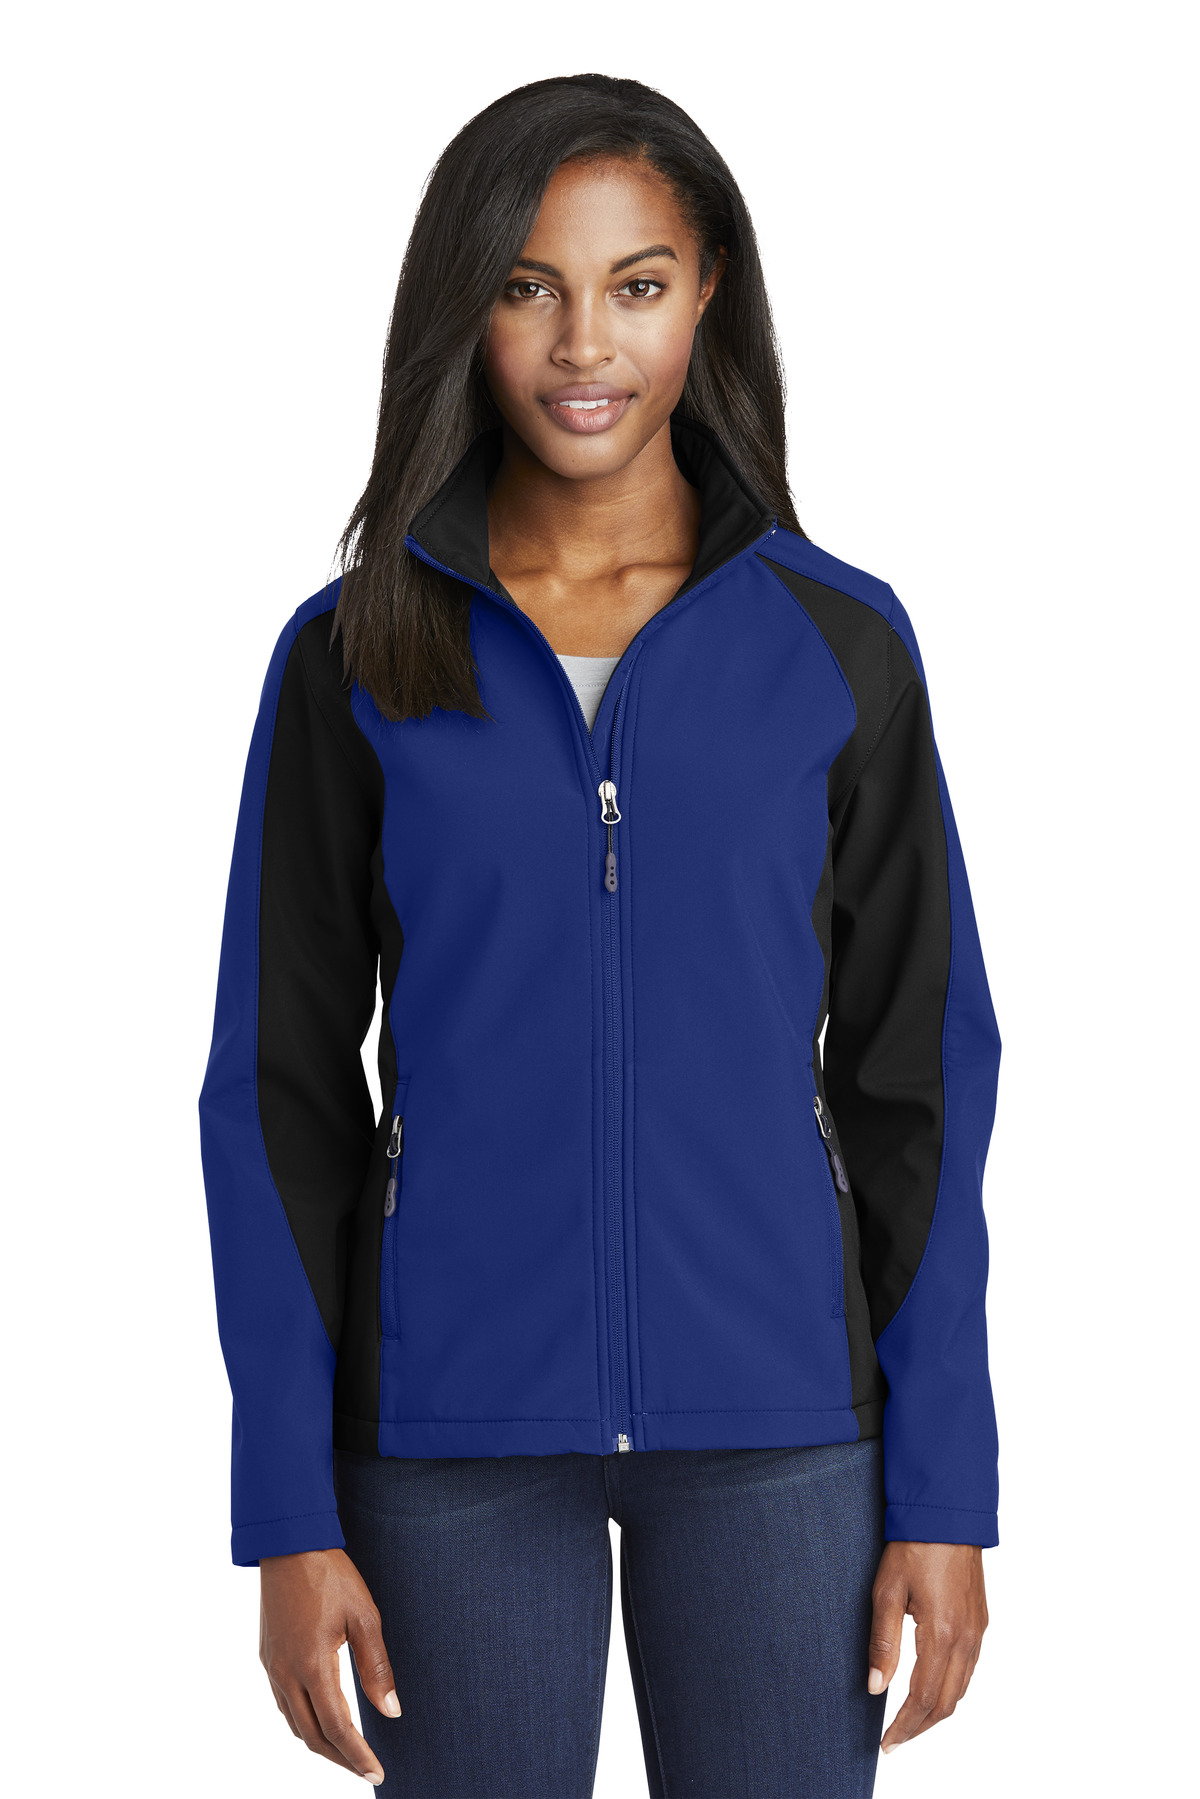 Sport-Tek ®  Ladies Colorblock Soft Shell Jacket. LST970 - True Royal/ Black